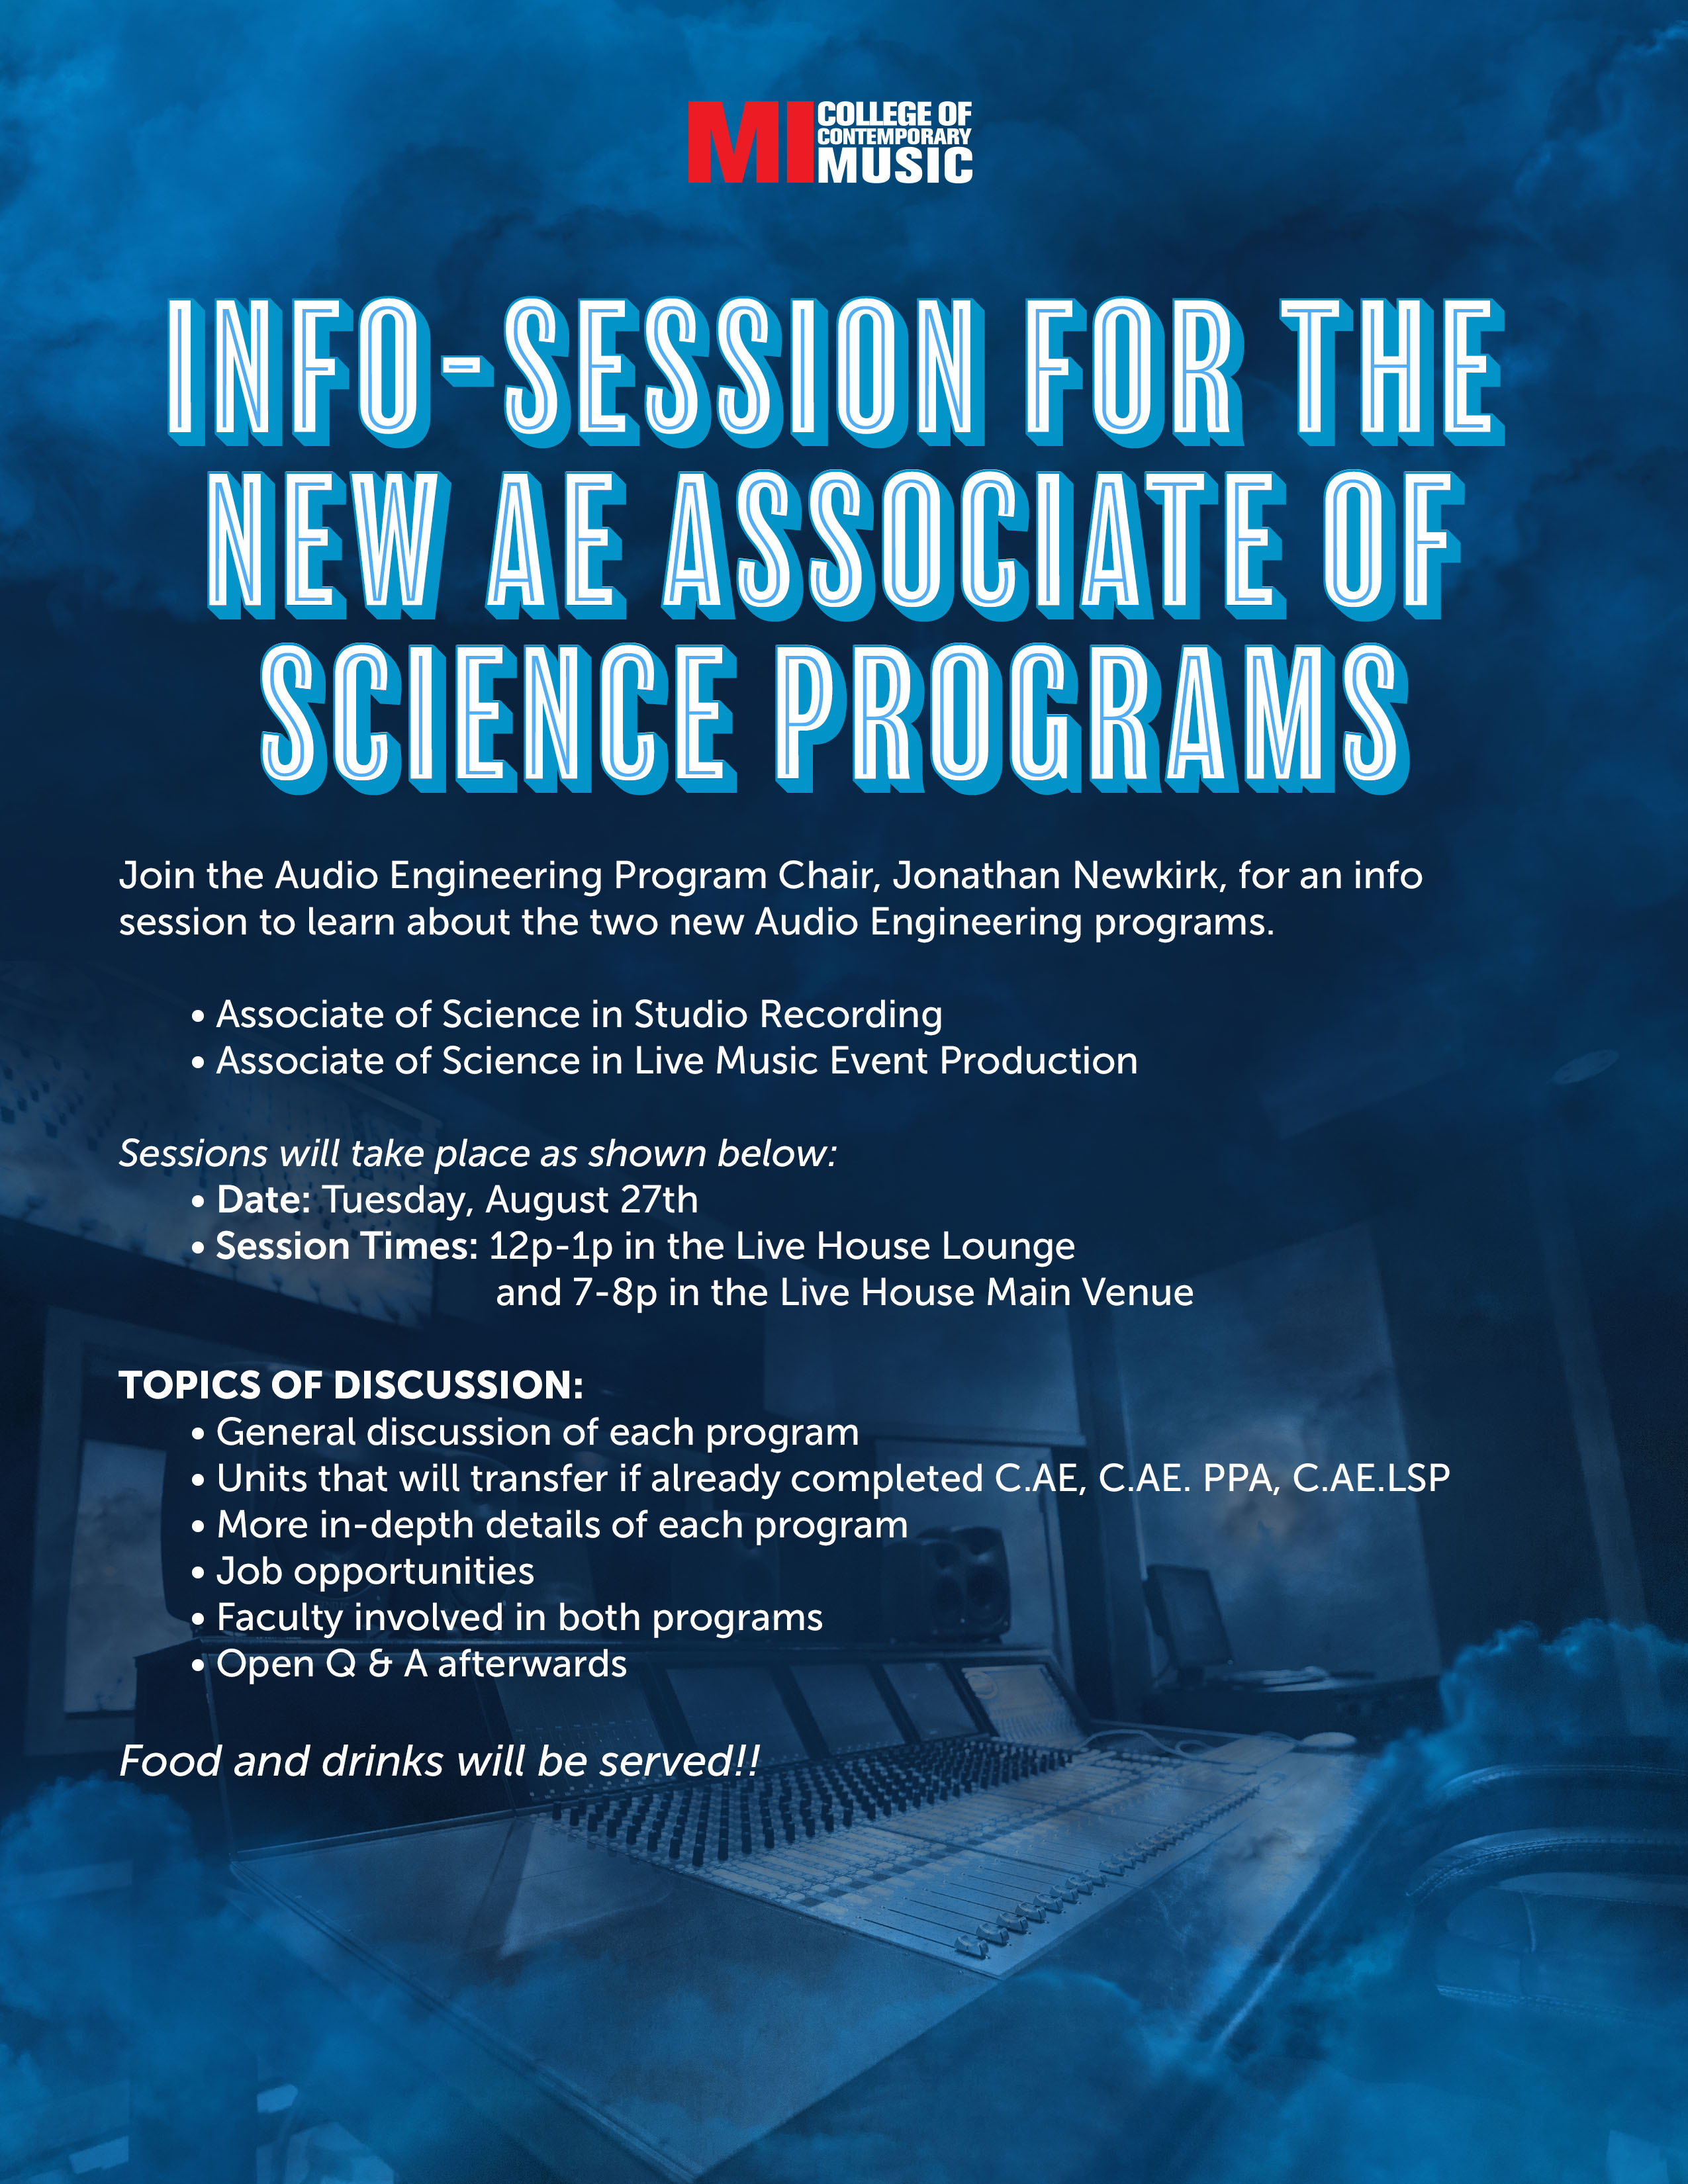 INFO-SESSION FOR THE NEW AE ASSOCIATE OF SCIENCE PROGRAMS